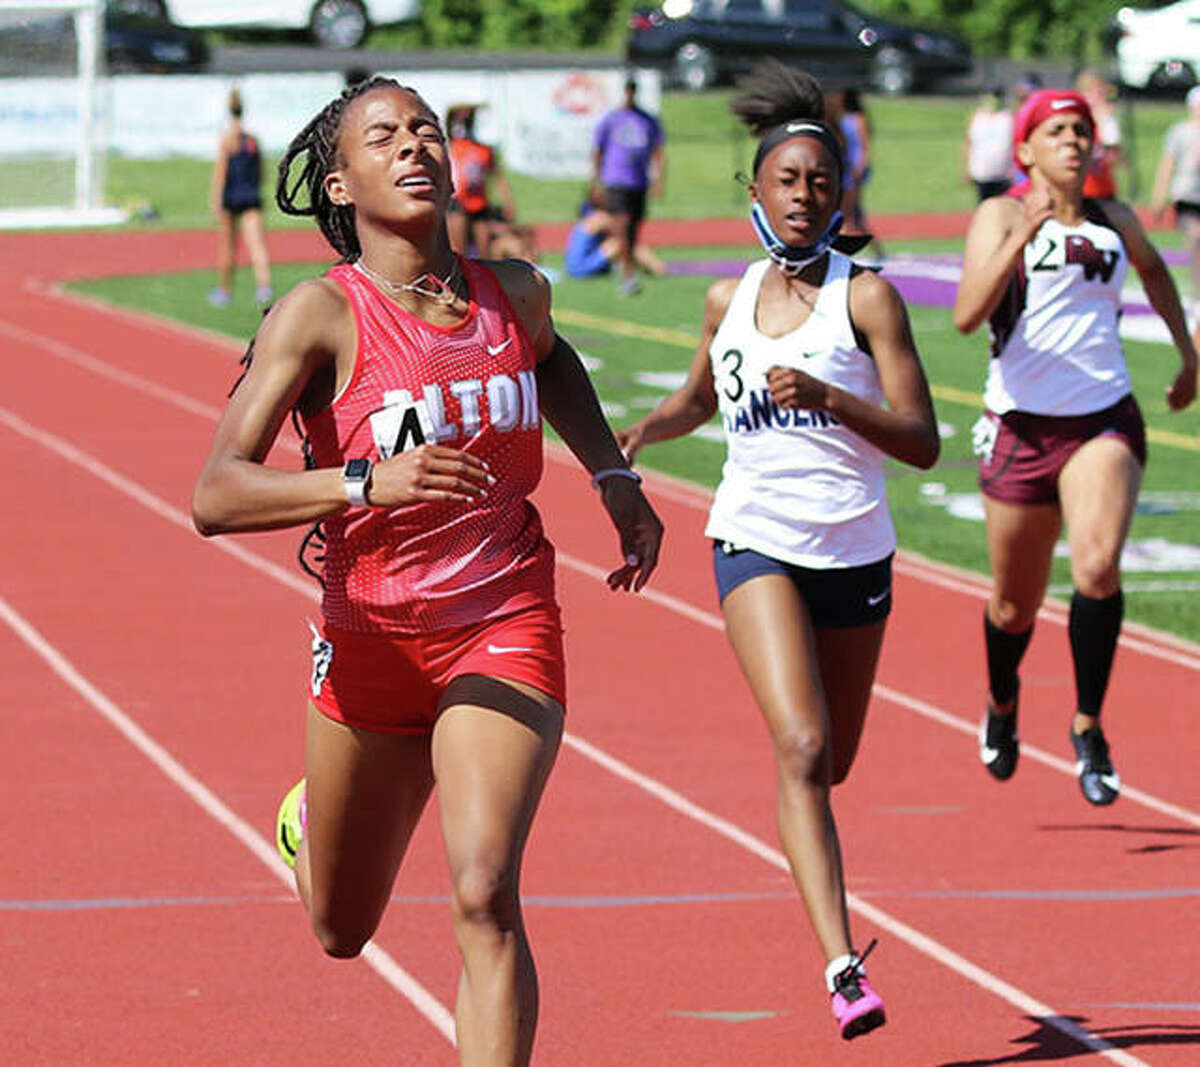 Alton's Renee Raglin (left) crosses the finish line in the 200 to complete her 100 and 200 title sweep in the SWC Meet last week at Collinsville.